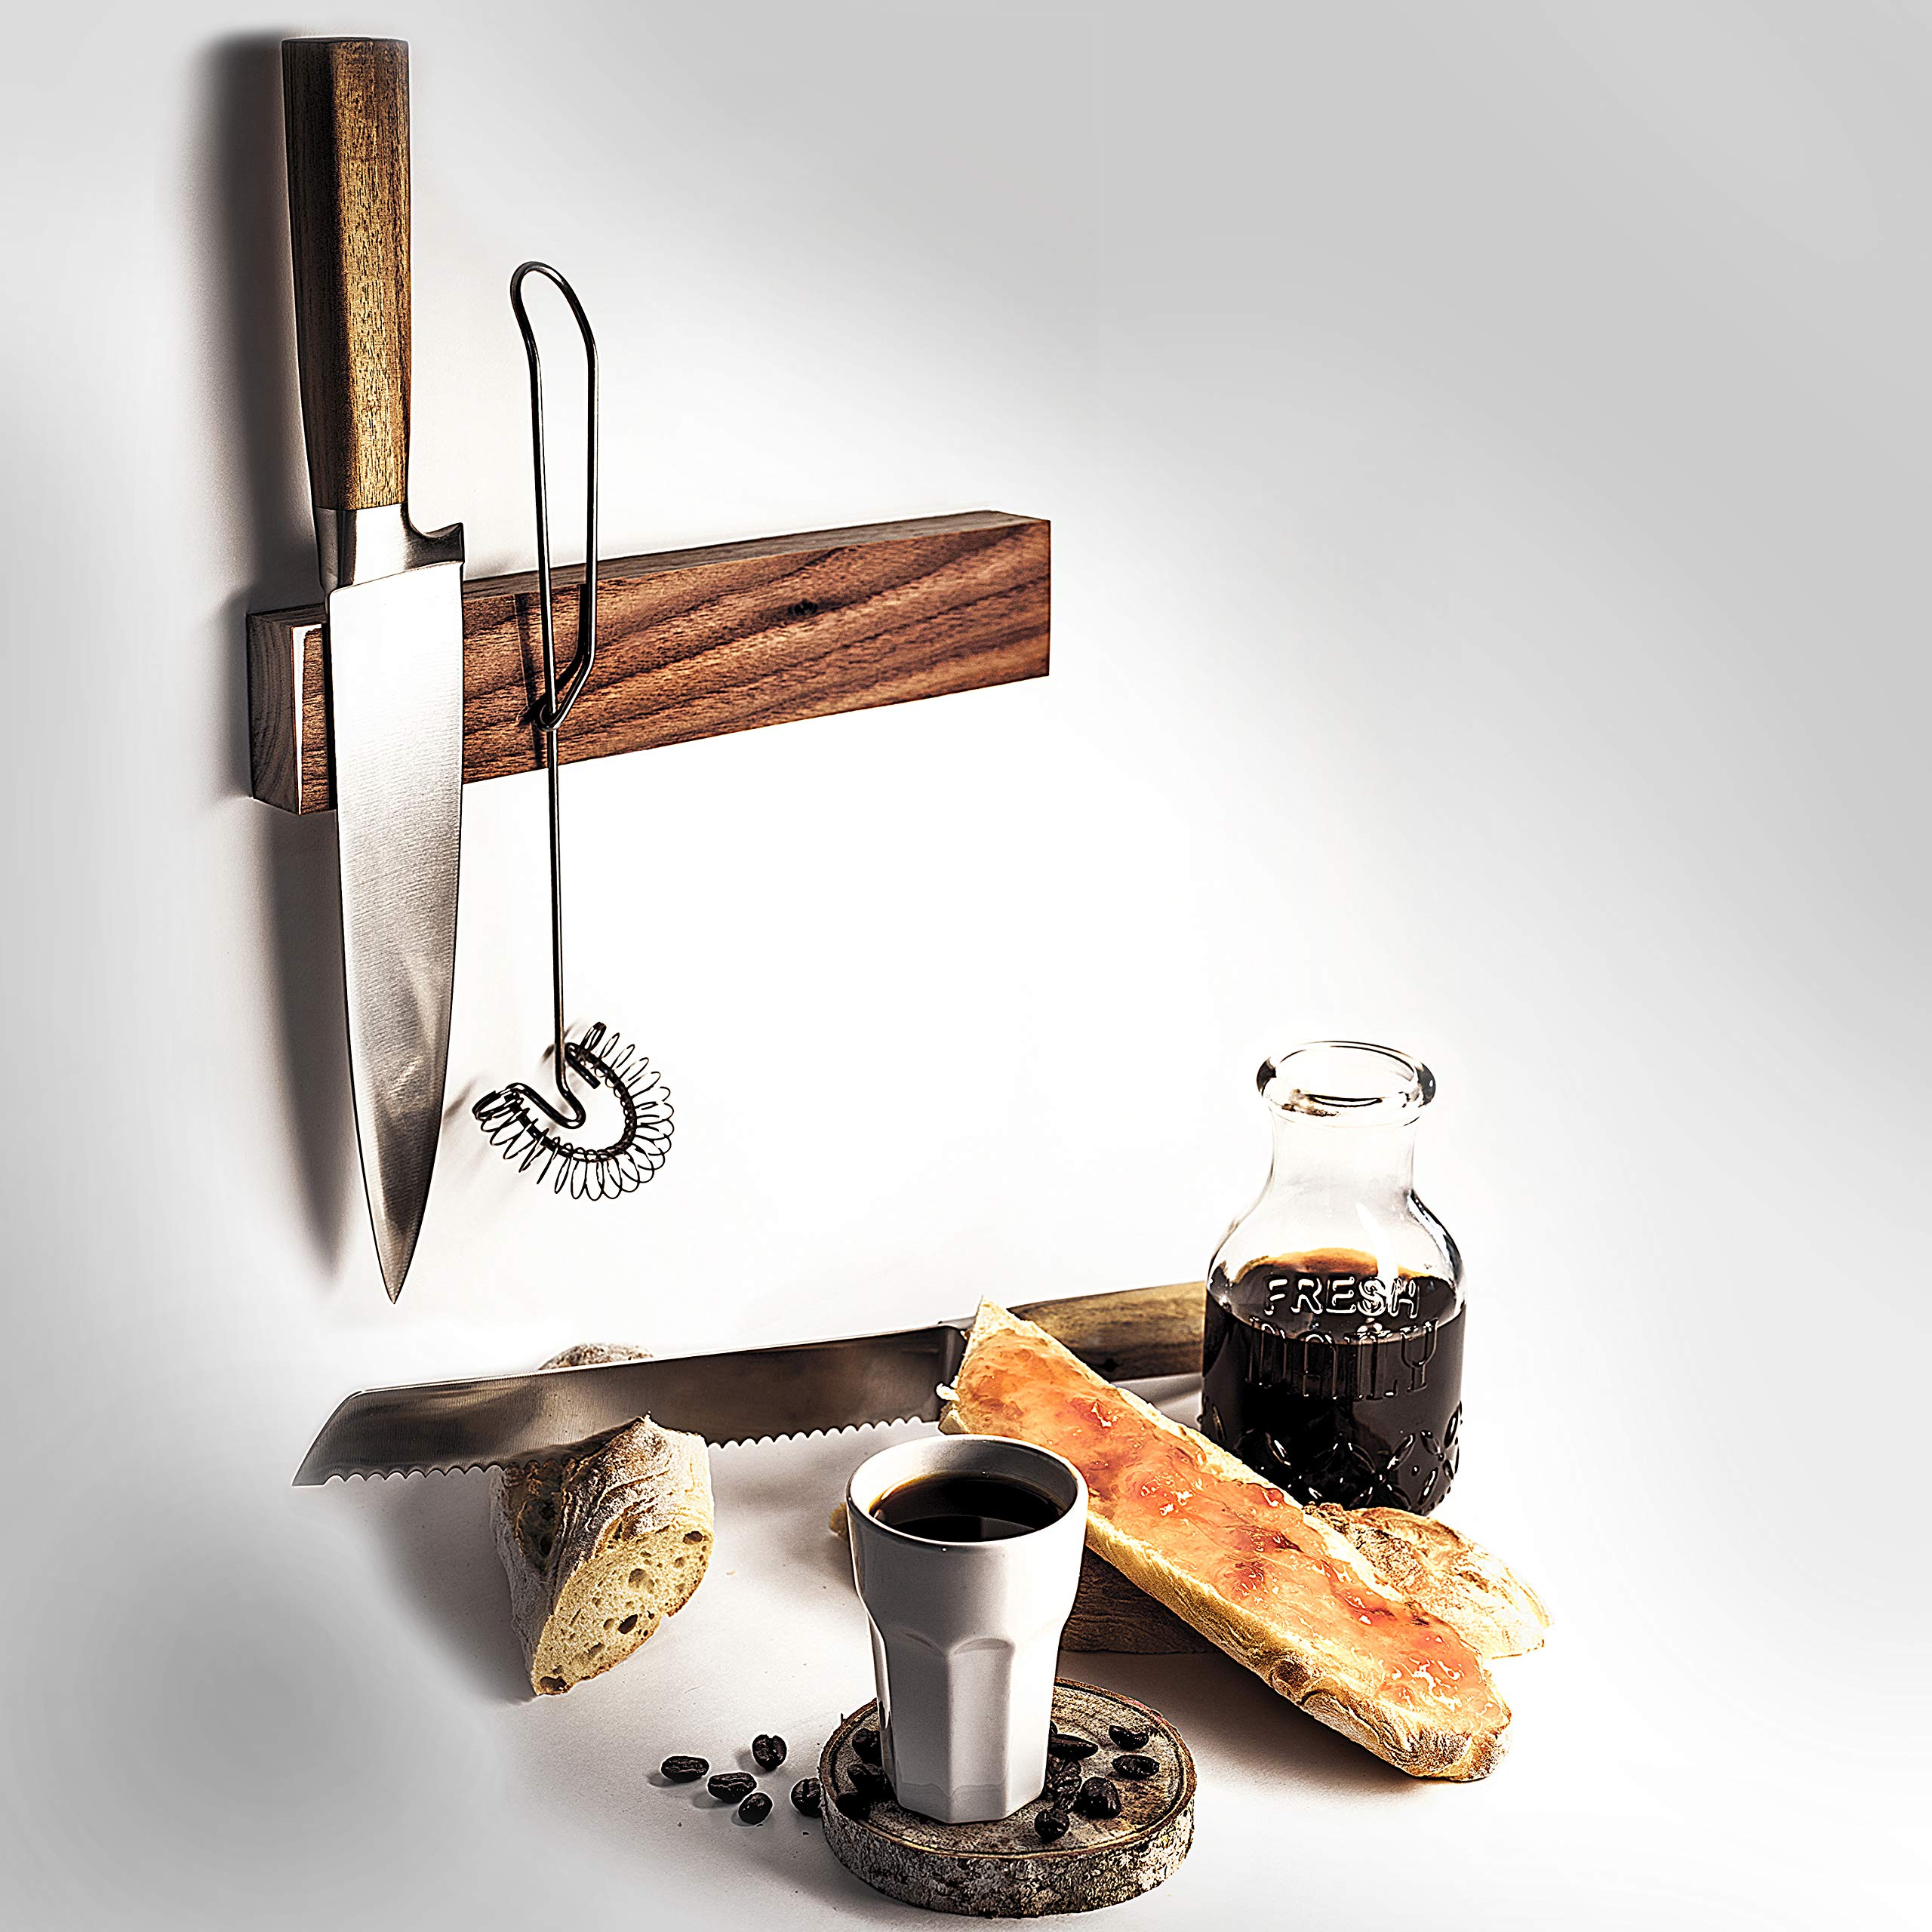 Magnetic Knife Strip Self Adhesive - 10 inch Magnet holder - Utensil Rack for Kitchen or Bar - Wall or Fridge Mount - Walnut Wood - Made in USA by Lure (Image #4)